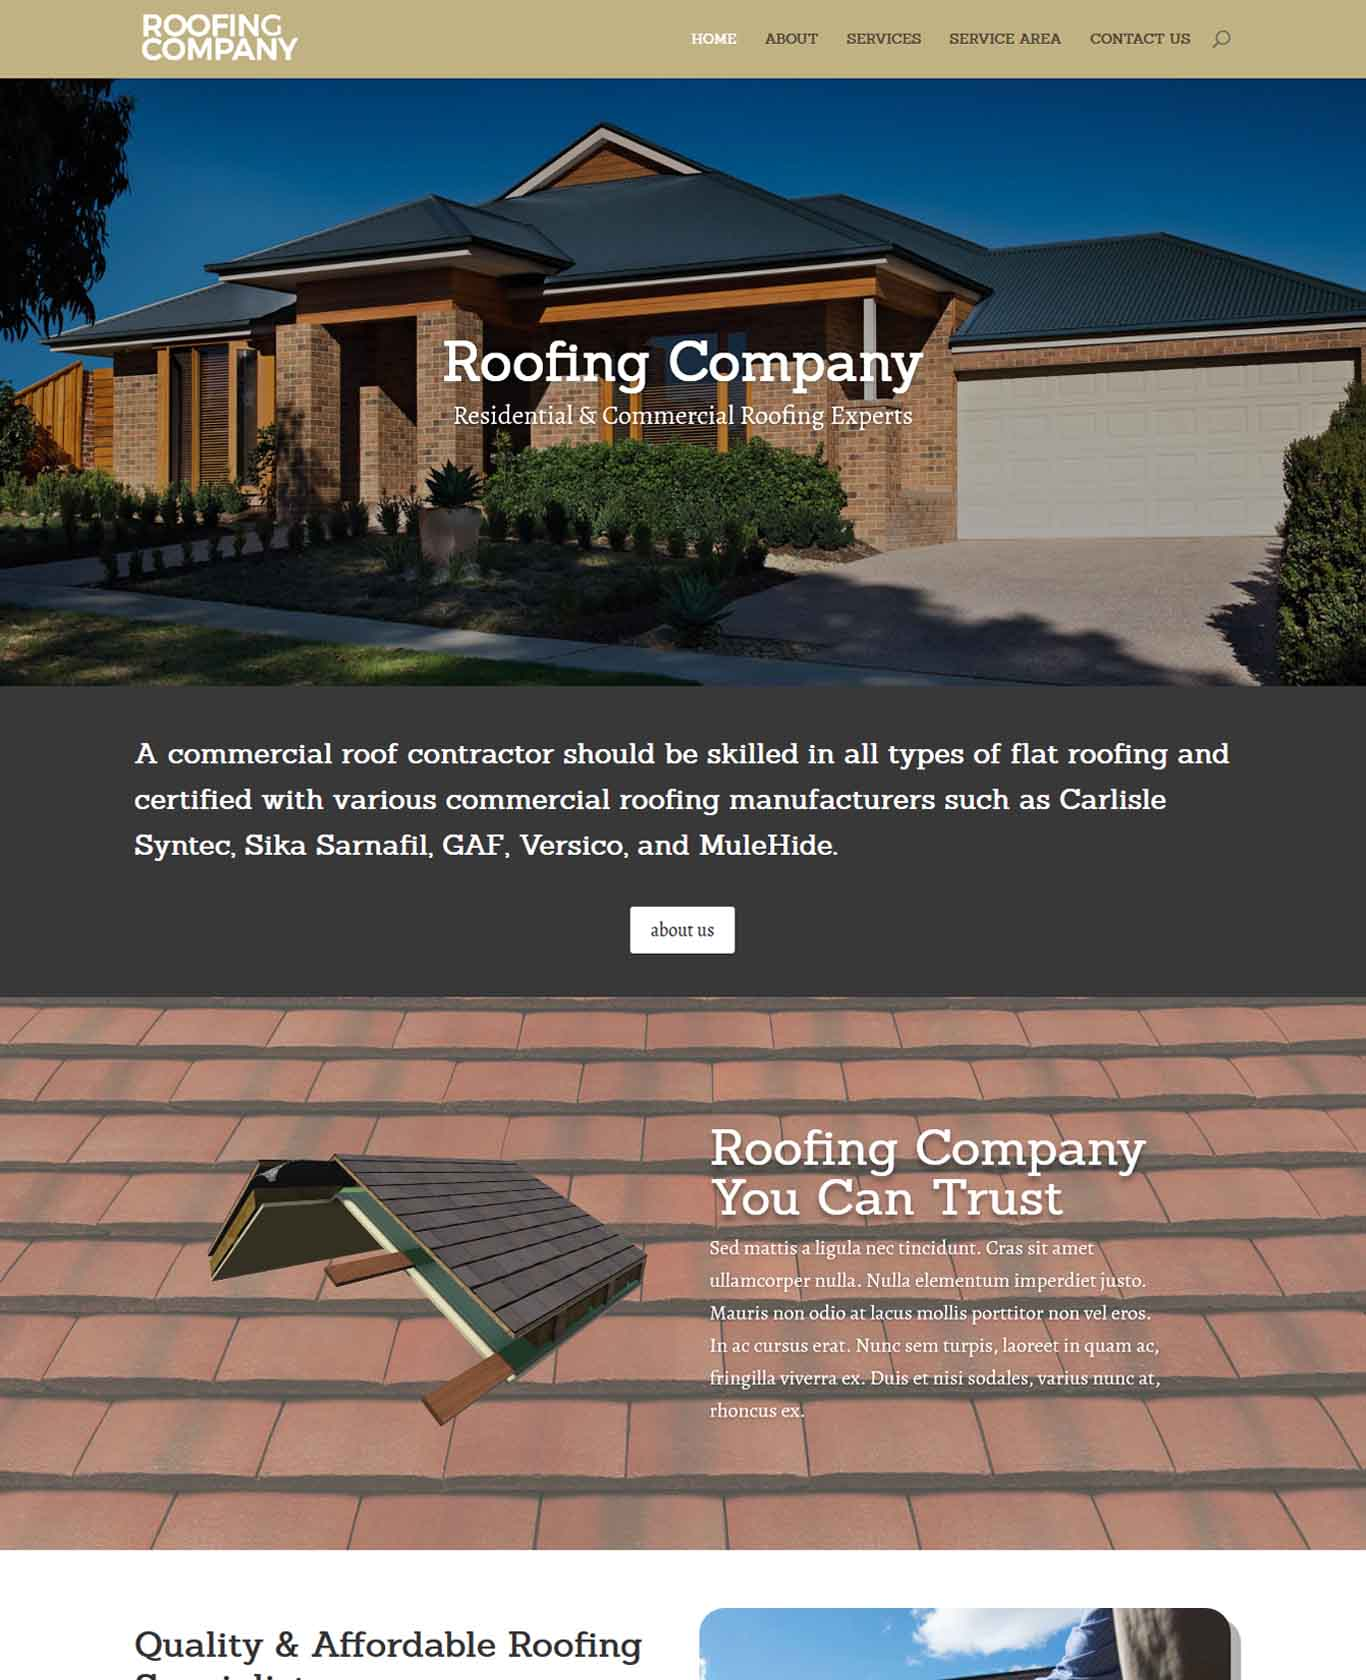 Roofer Website Sample Design 4